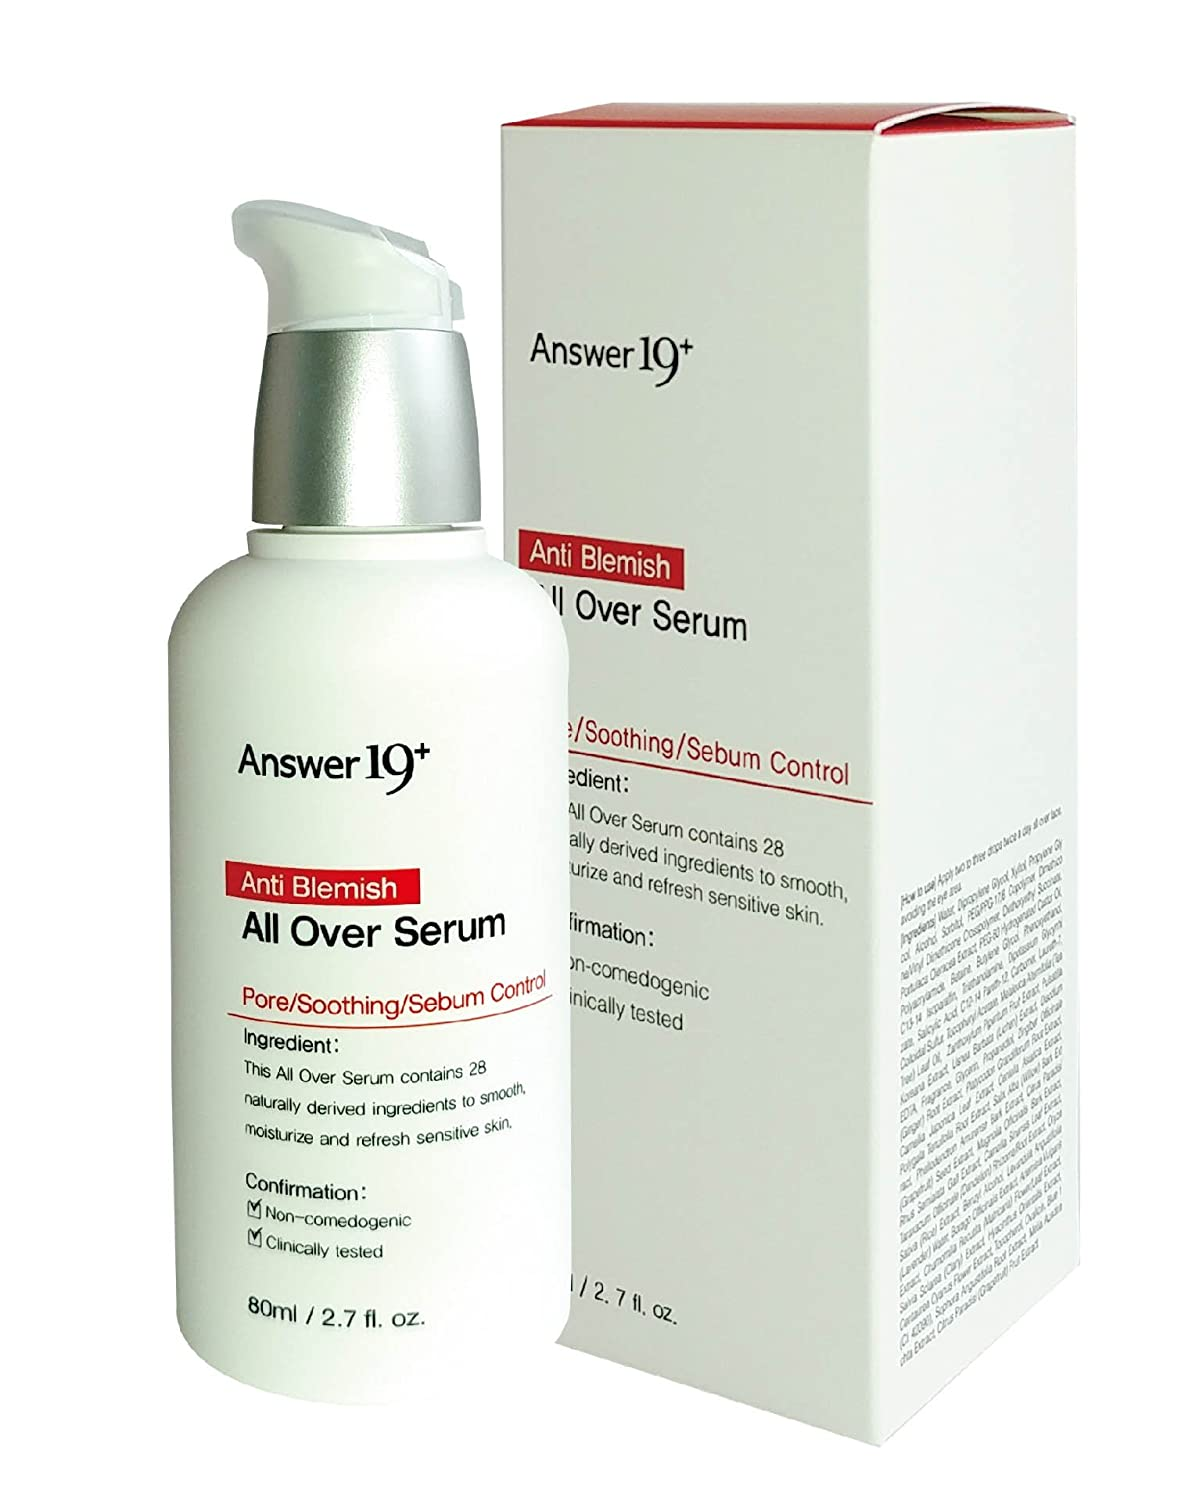 [ANSWER NINETEEN+] Anti Blemish All Over Serum – Minimize Skin Irritation with Ecocert Certified Ingredients, Pore Care, Peeling, Sebum Control, Skin Brightening, Anti-Wrinkle, 80ml / 2.8 fl. Oz